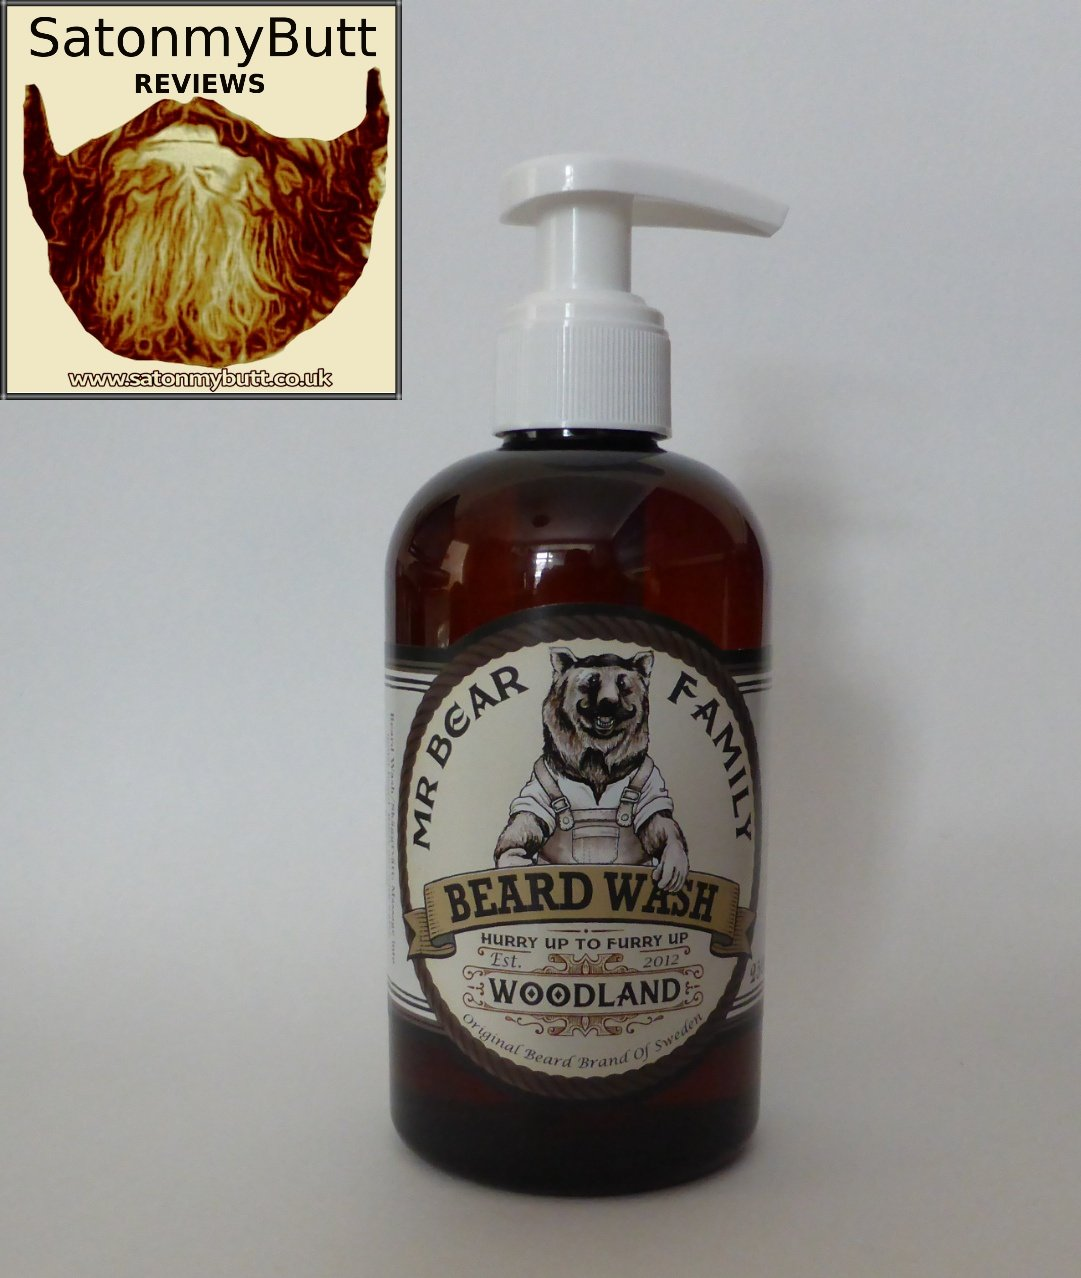 Review: Mr Bear Family Woodland' Beard Wash